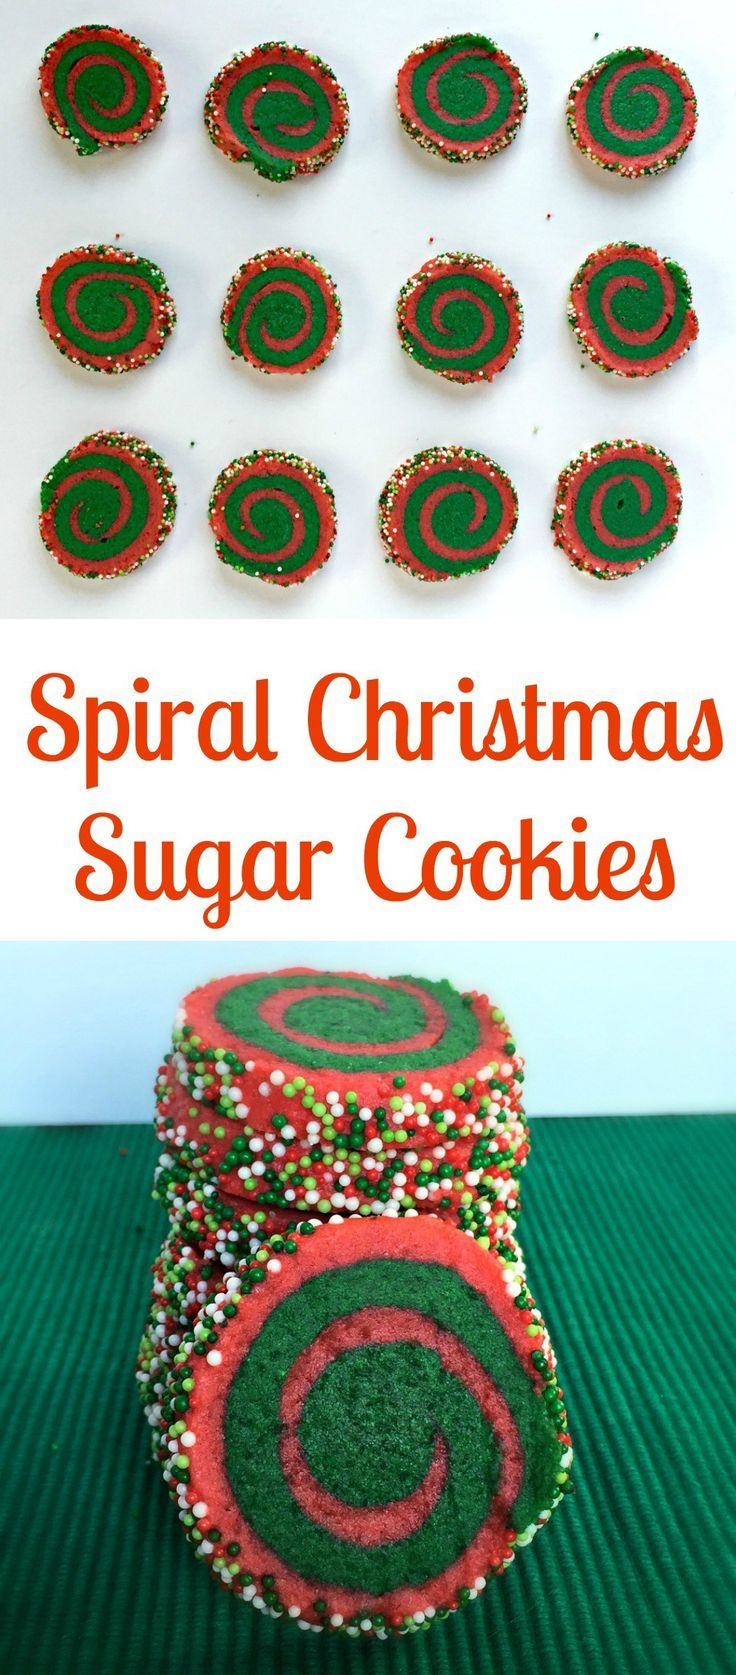 Spiral Christmas Sugar Cookies